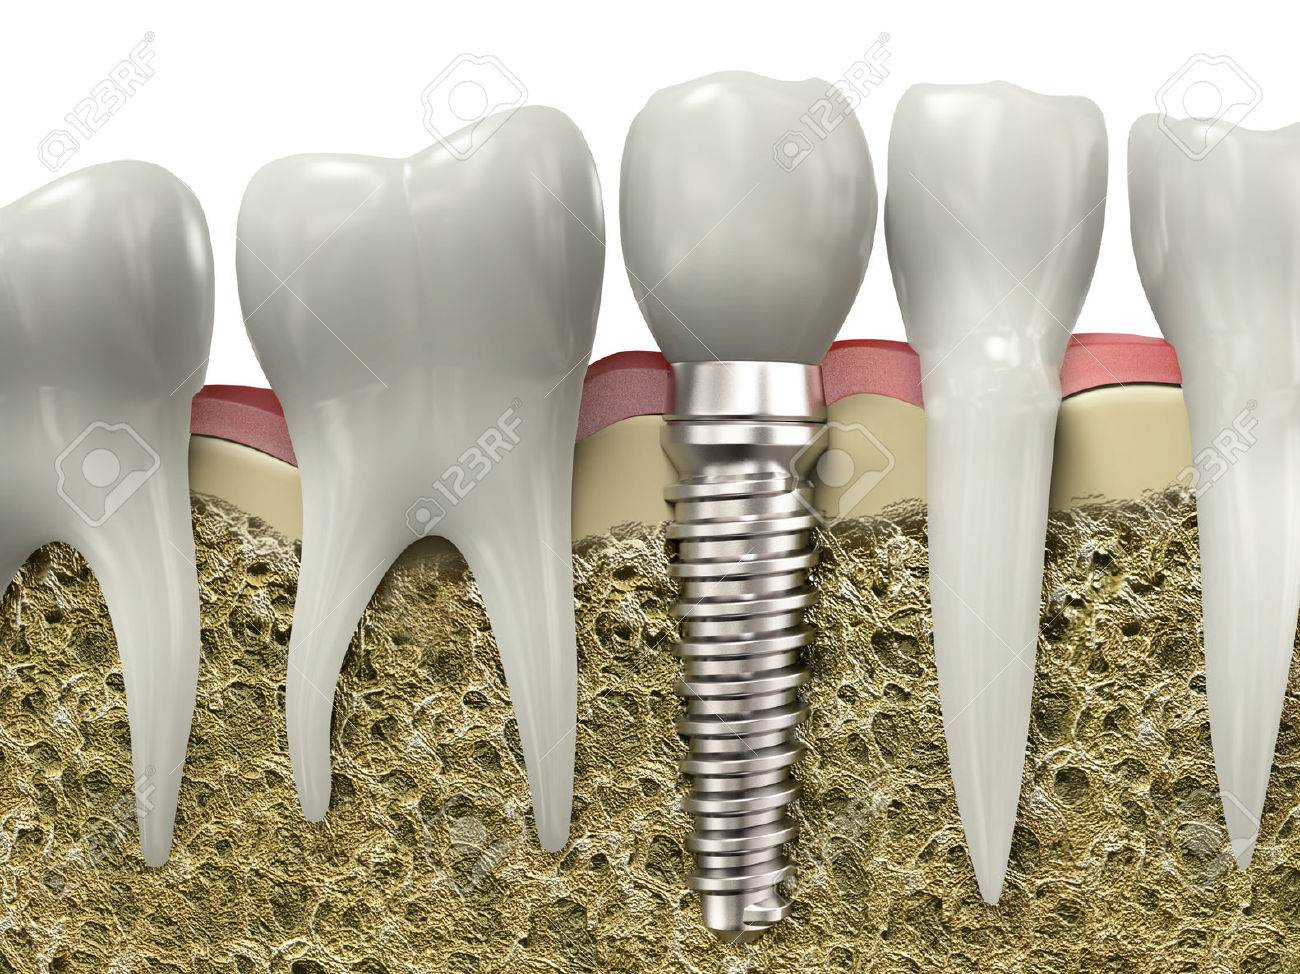 Very High Resolution 3d Rendering Of A Dental Implant Stock Photo Picture And Royalty Free Image Image 26754734